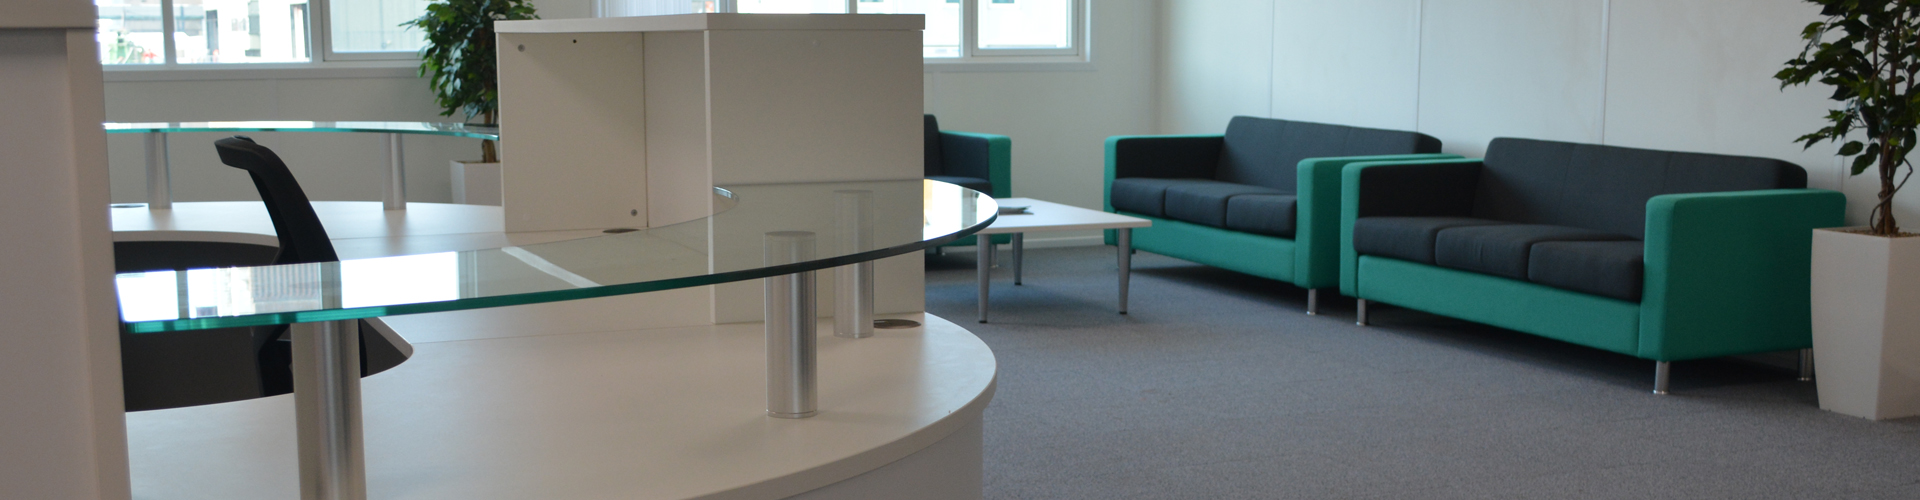 Commercial Office & Welfare Furniture